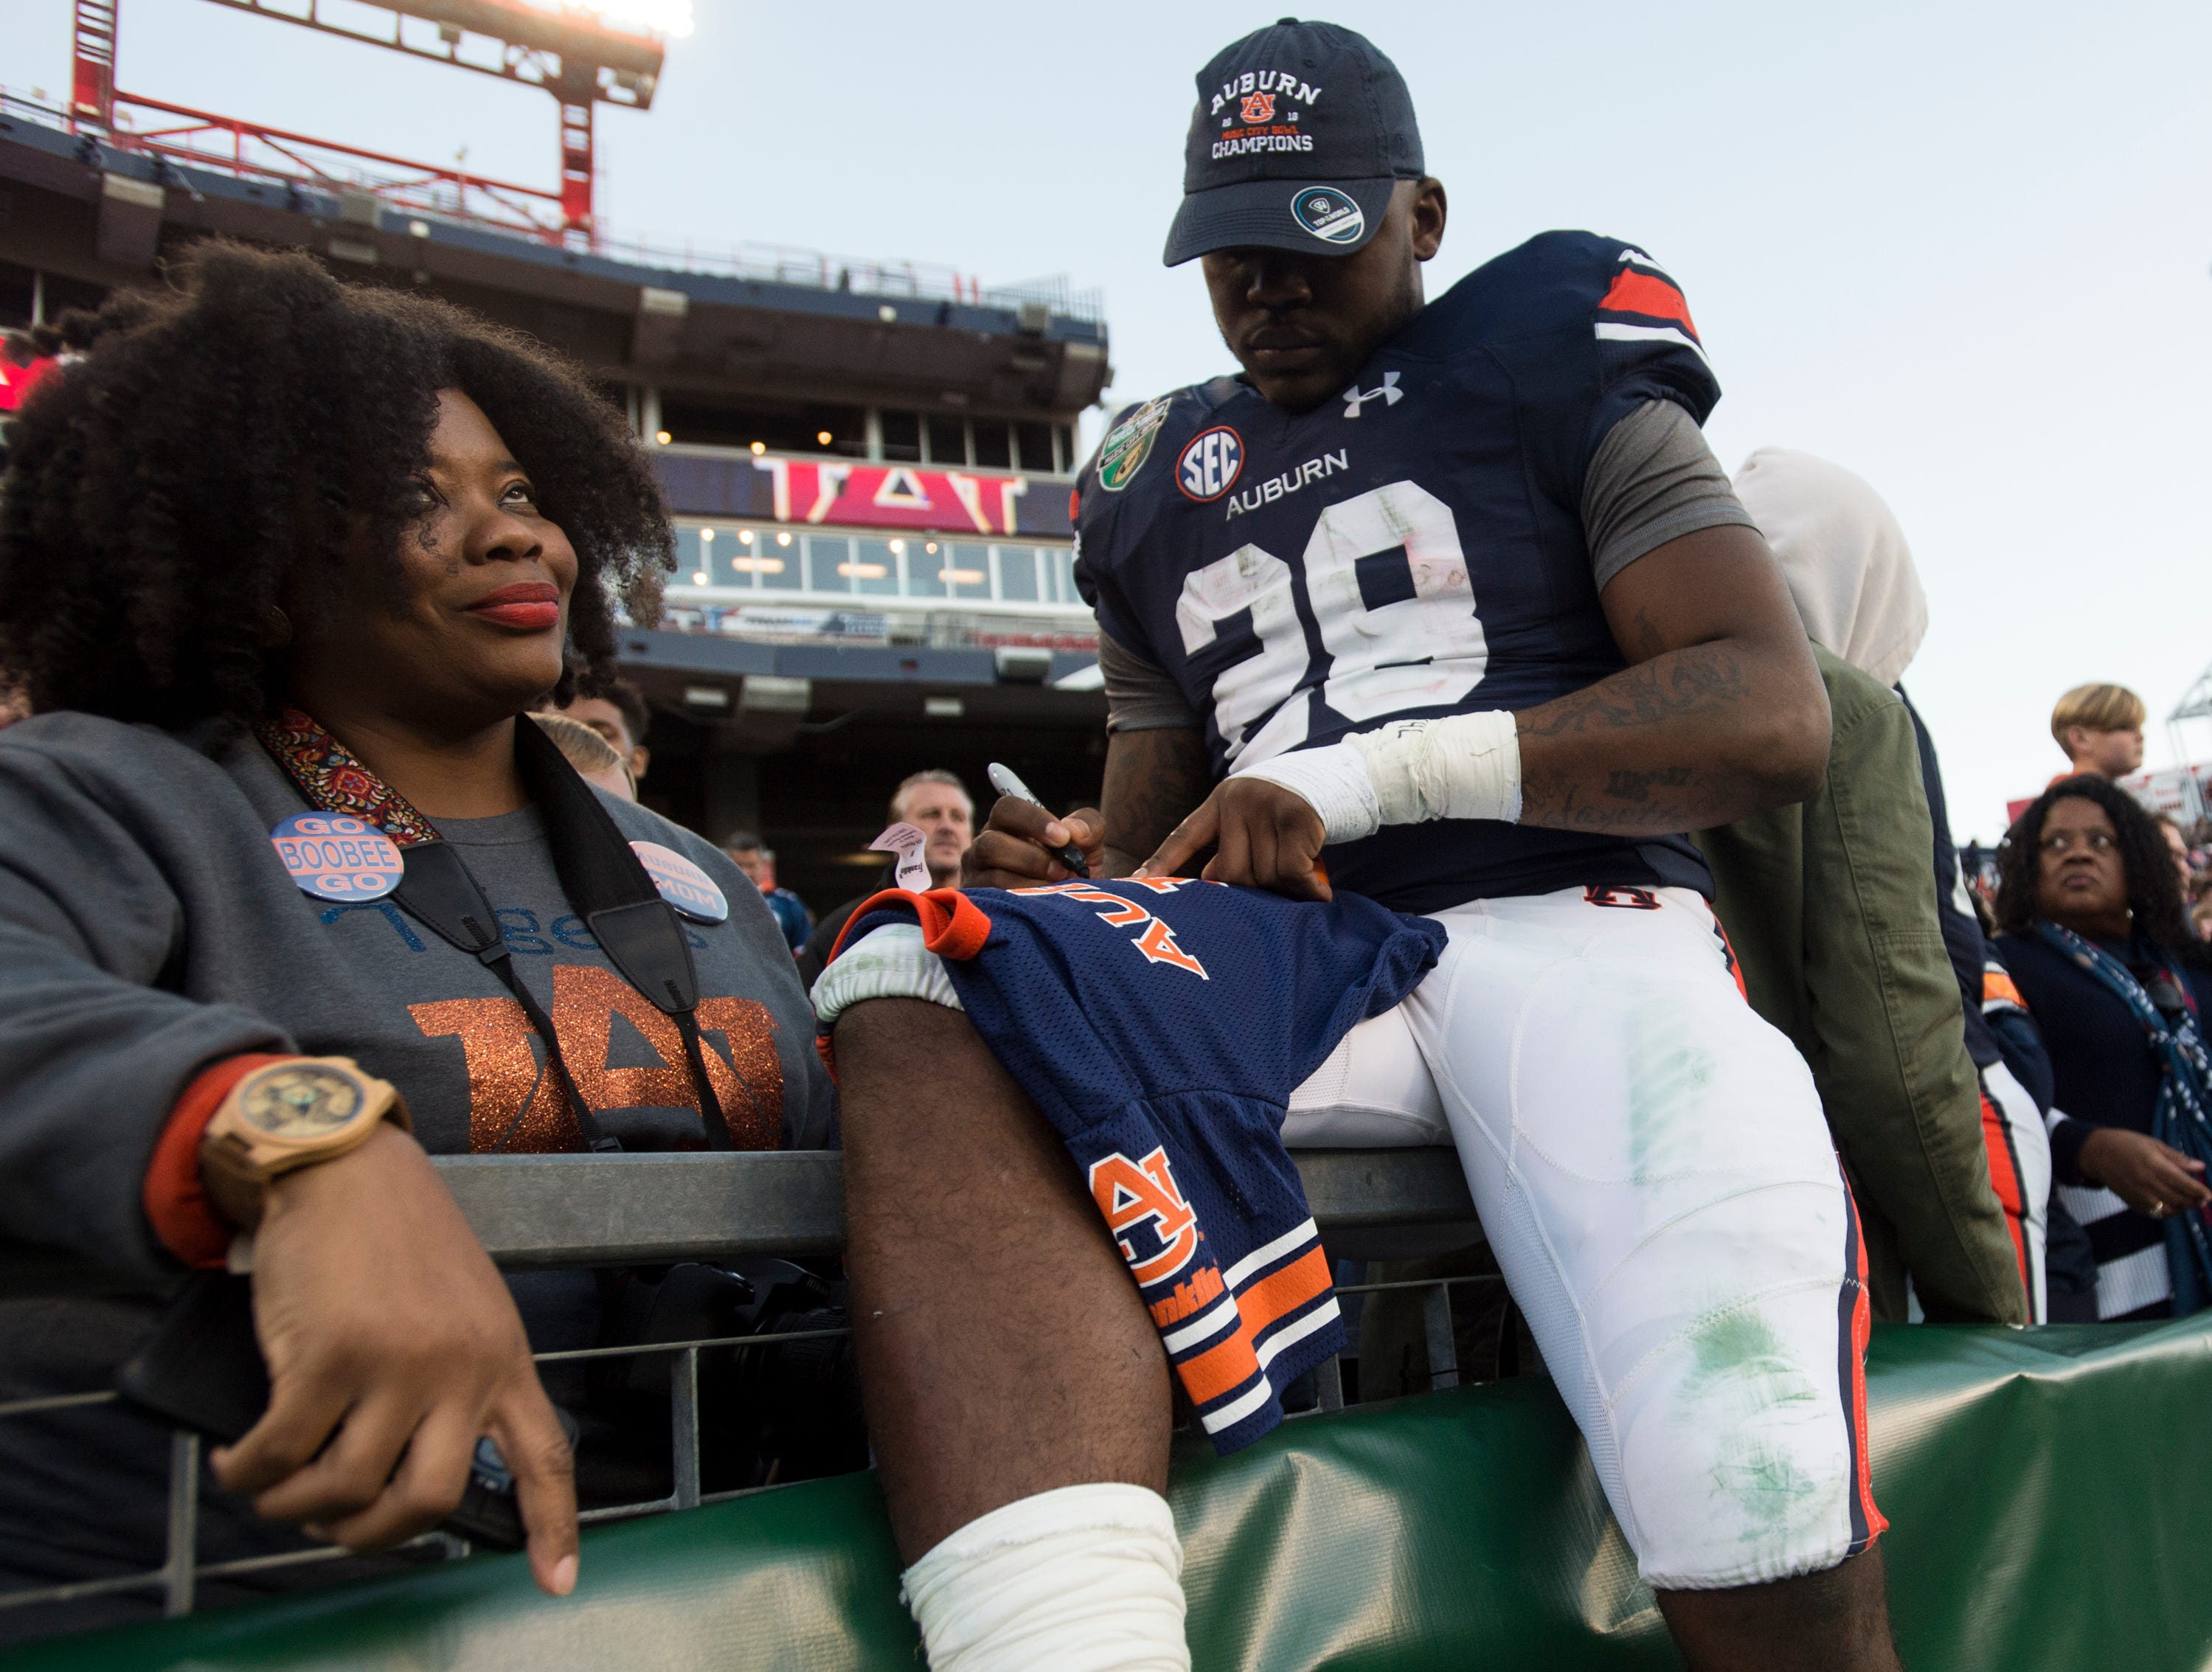 Auburn running back JaTarvious Whitlow (28) signs autographs after the Music City Bowl at Nissan Stadium in Nashville, Tenn., on Friday, Dec. 28, 2018. Auburn defeated Purdue 63-14.